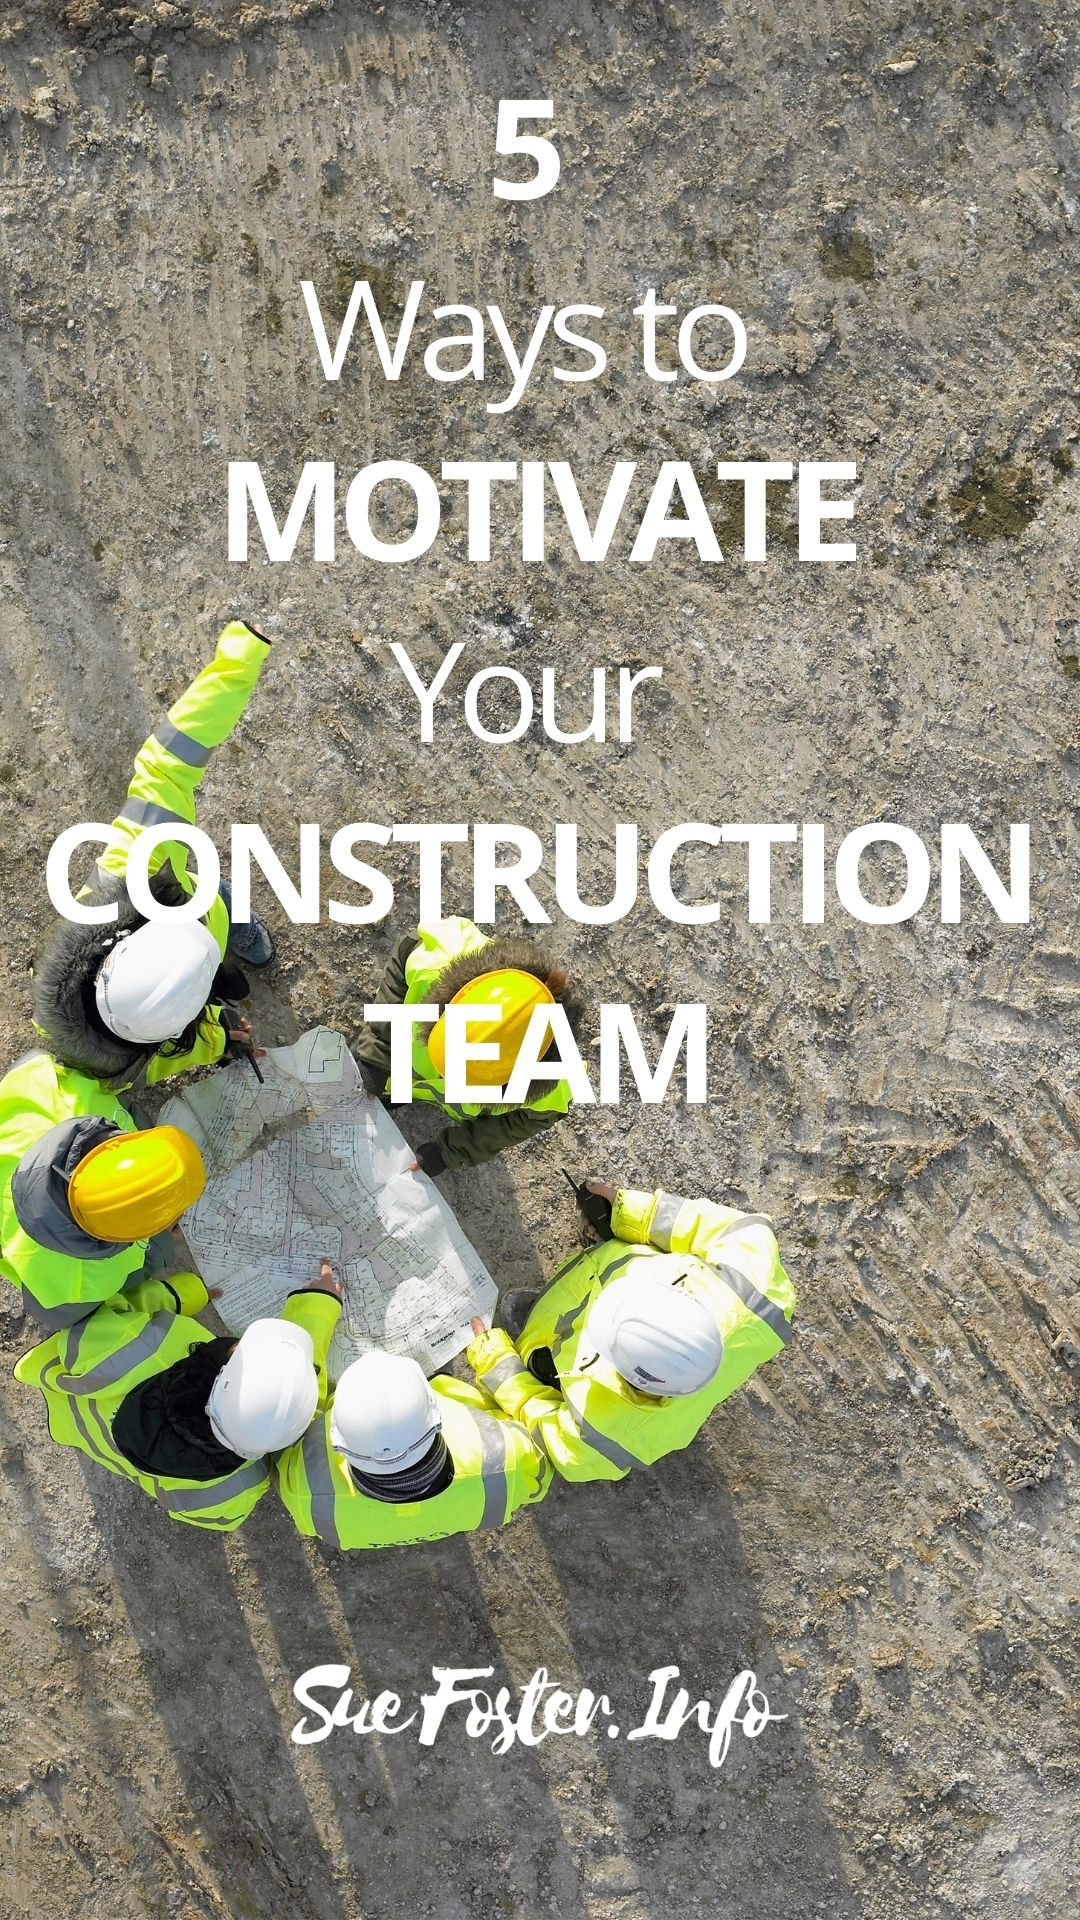 Construction managers looking to complete their projects successfully need to facilitate a motivating environment for workers. Read these tips to get ideas.